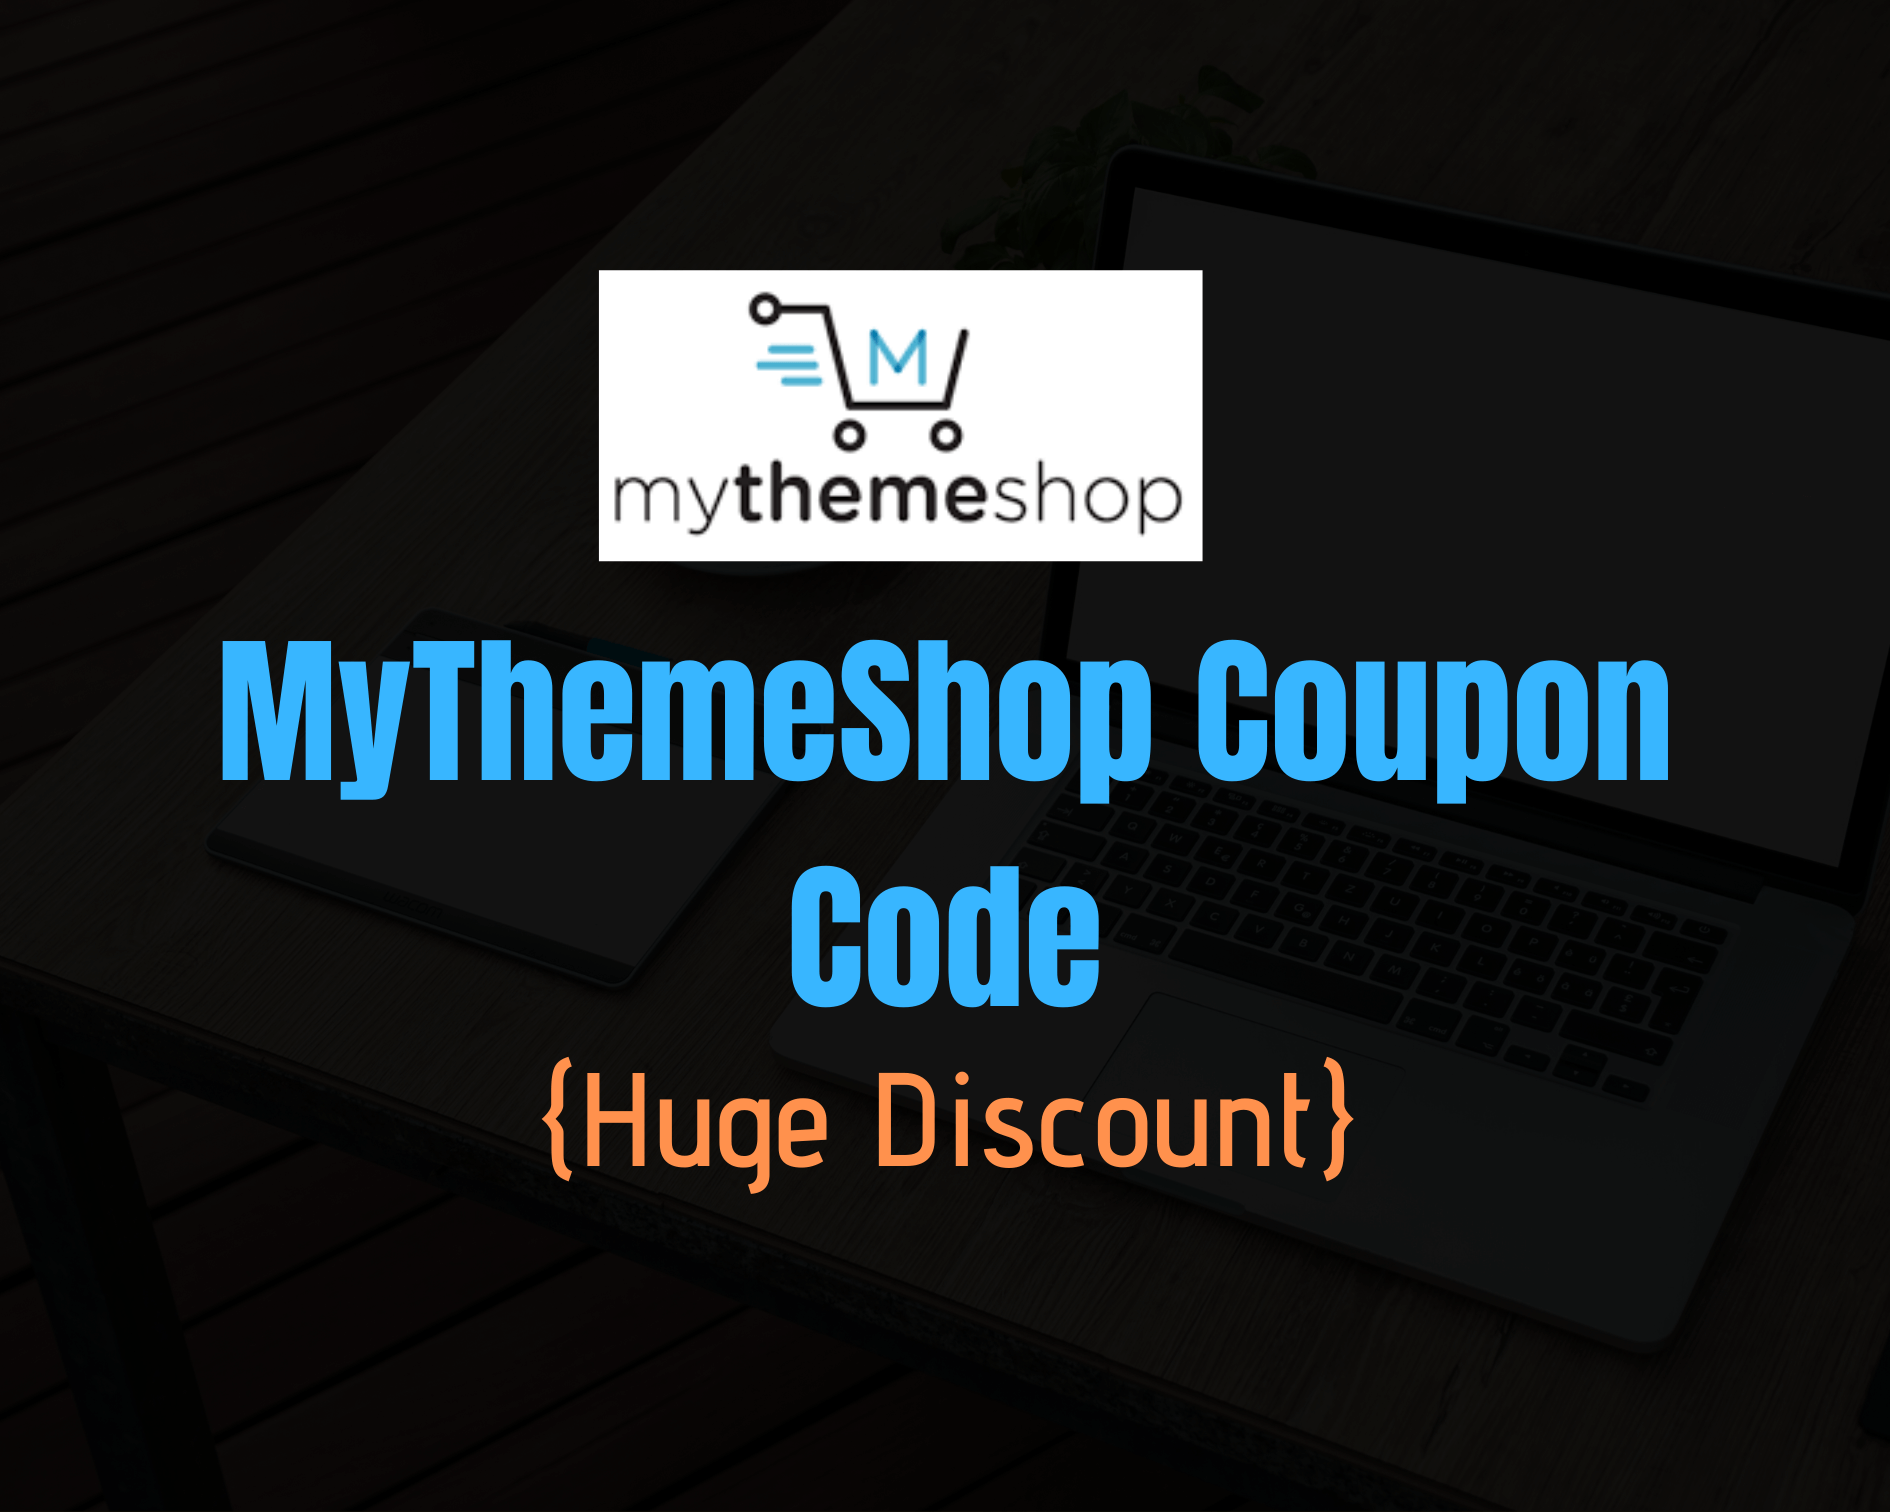 MyThemeShop Coupon Code: Huge 50% Discount On All Products